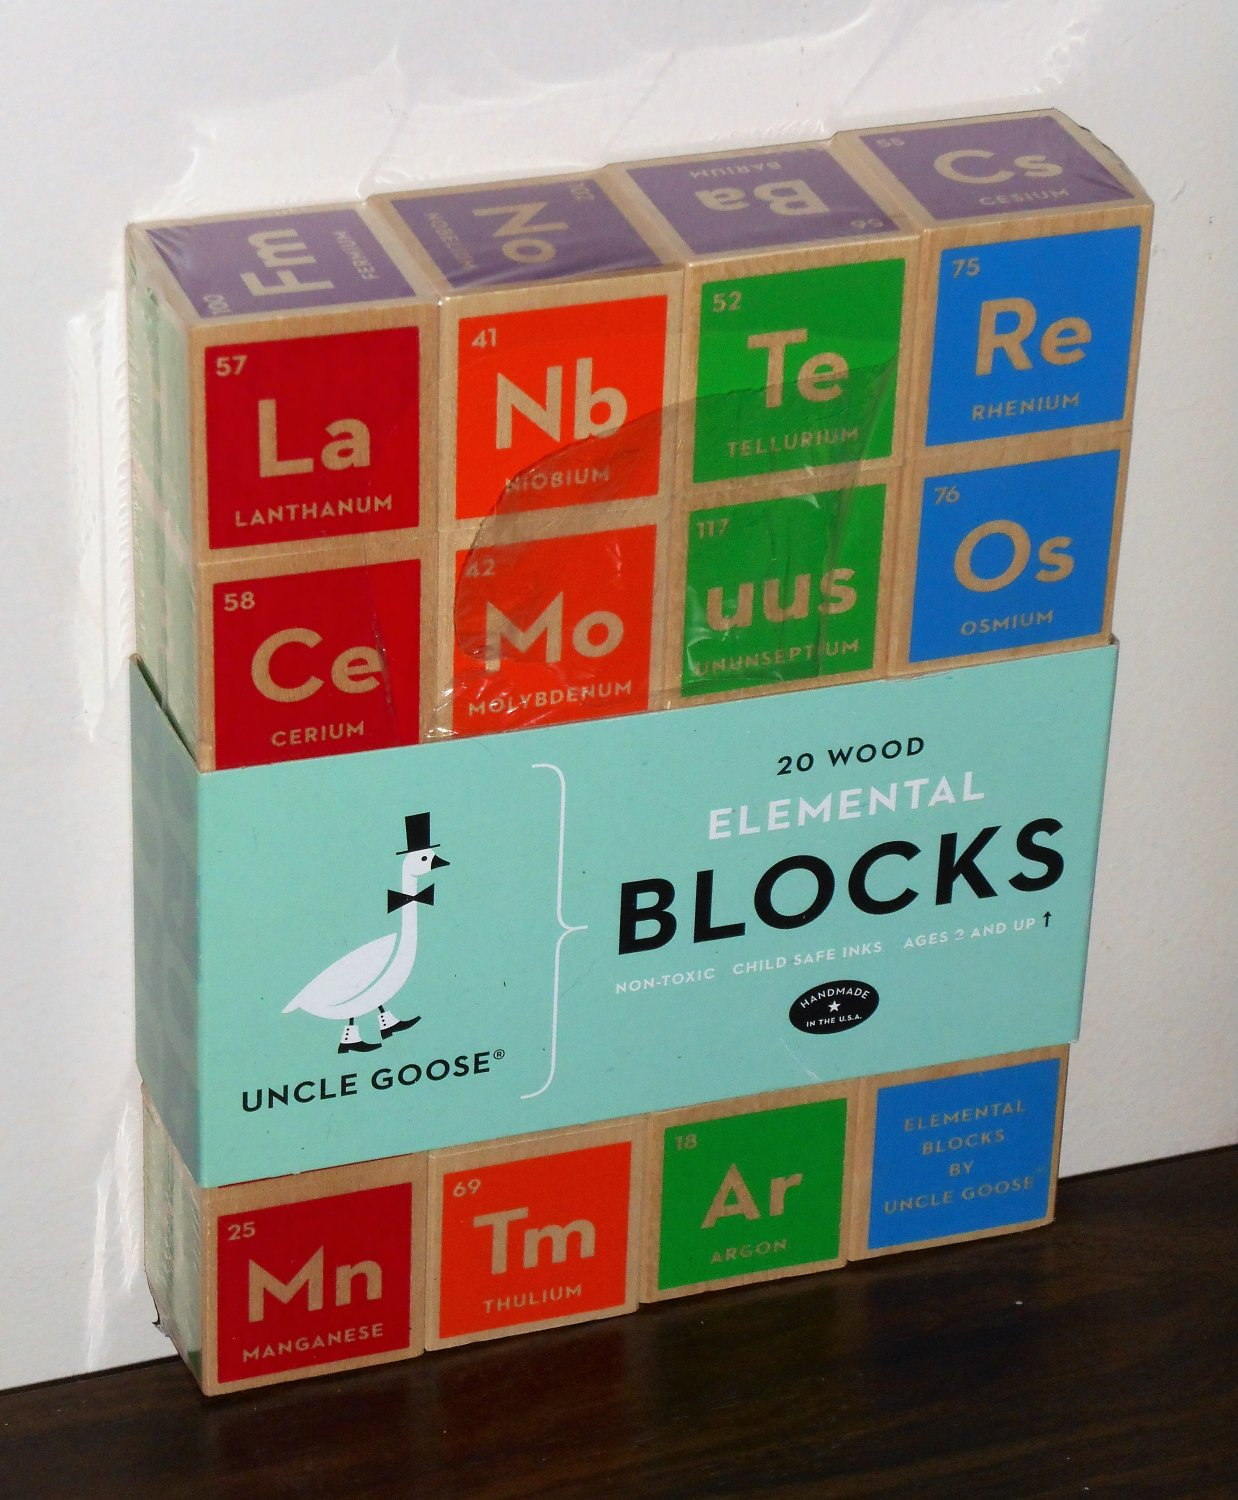 Uncle Goose 20 Wood Elemental Blocks Periodic Table PT-20 Non-Toxic